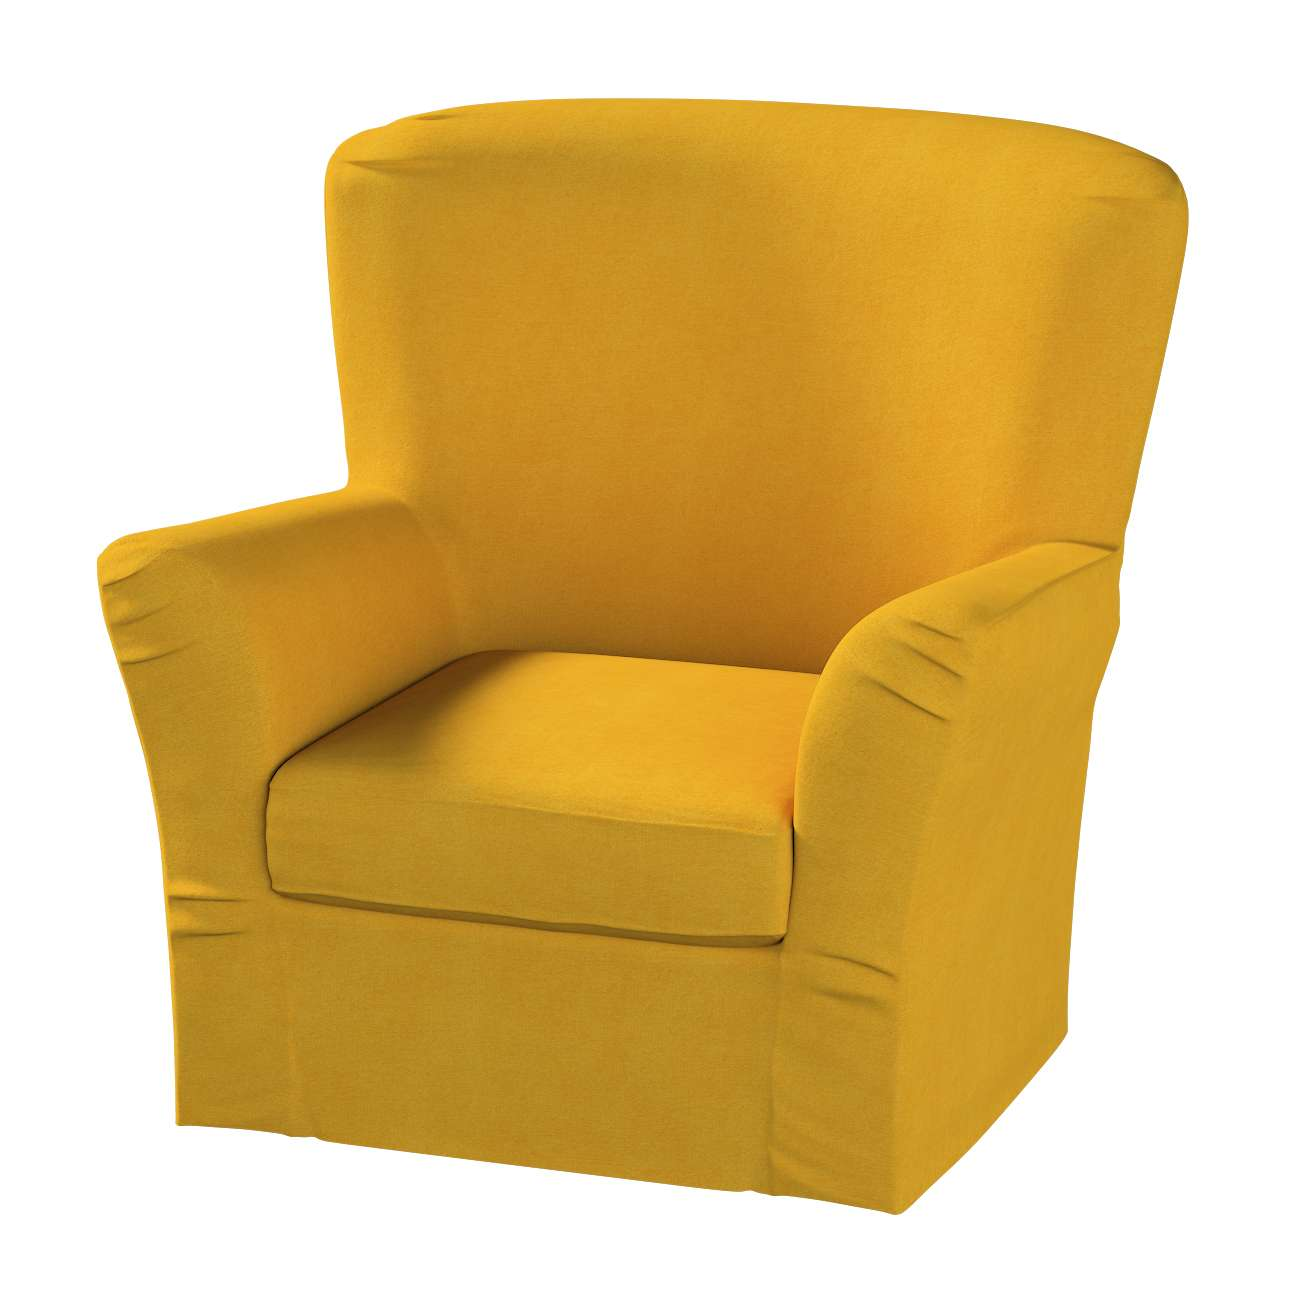 Tomelilla armchair  Tomelilla armchair in collection Etna, fabric: 705-04